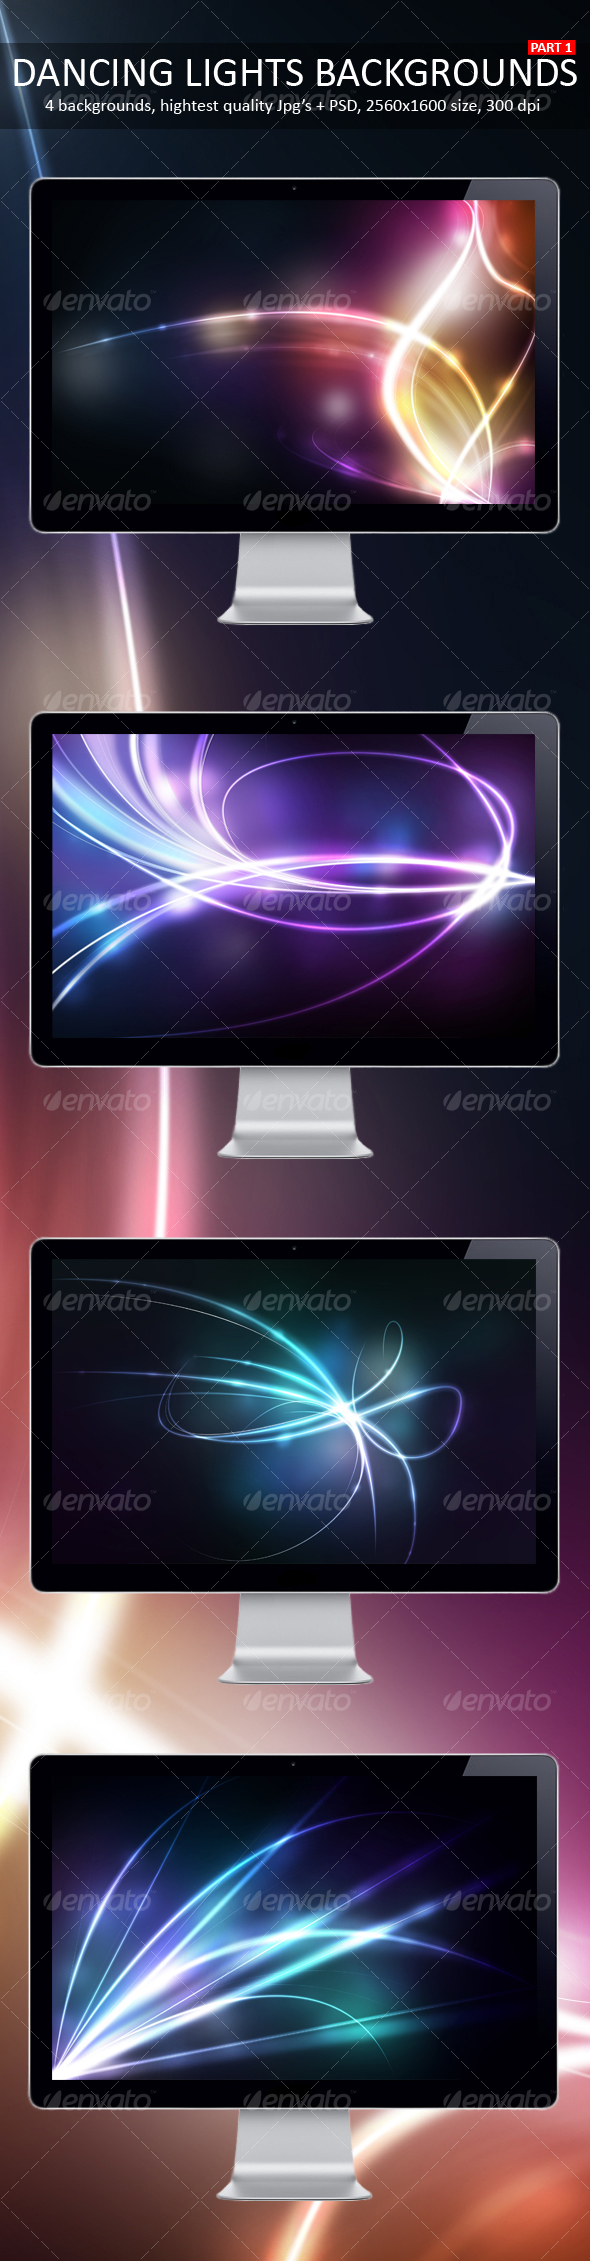 GraphicRiver Dancing Lights Backgrounds Part 1 91191